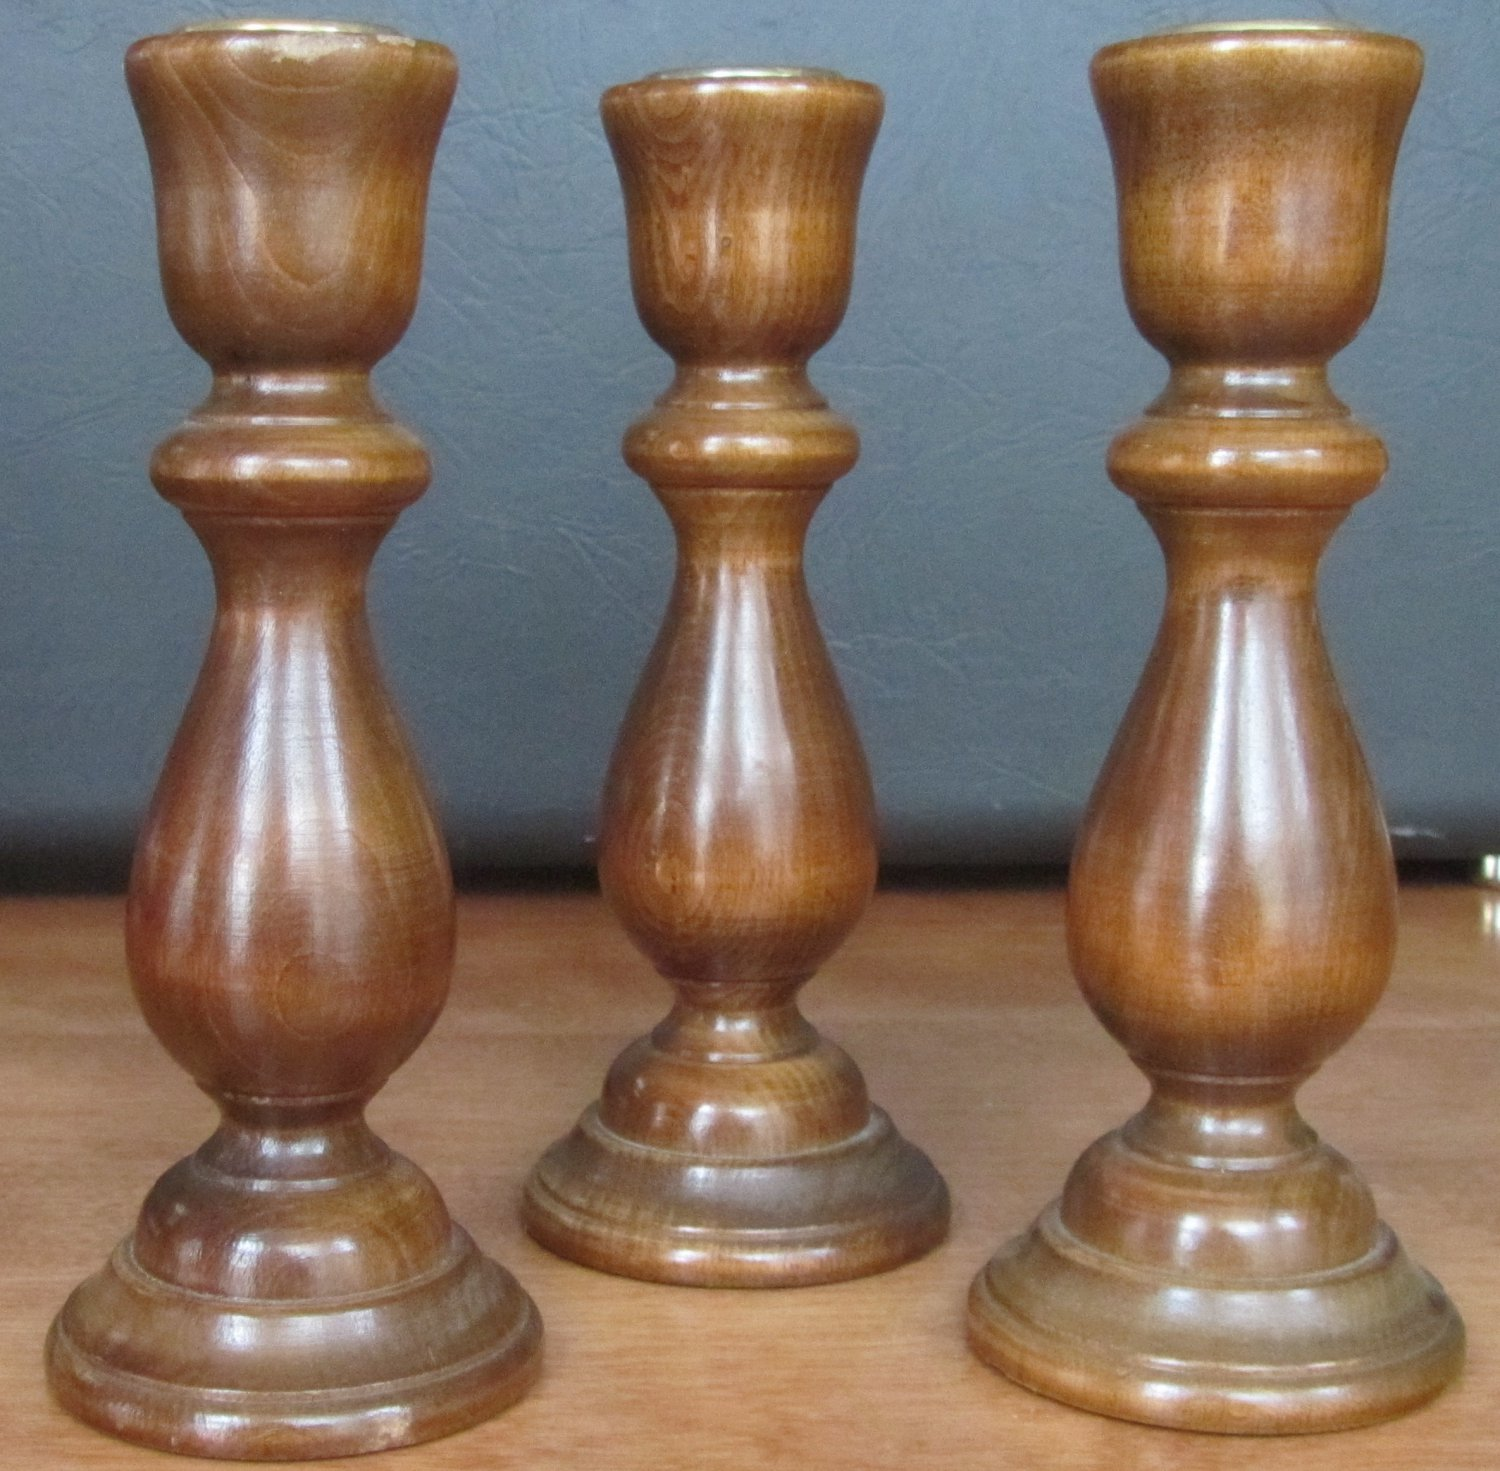 VINTAGE COLONIAL STYLE POLISHED WALNUT SET OF 3 CANDLEHOLDERS WITH BRASS INSERT